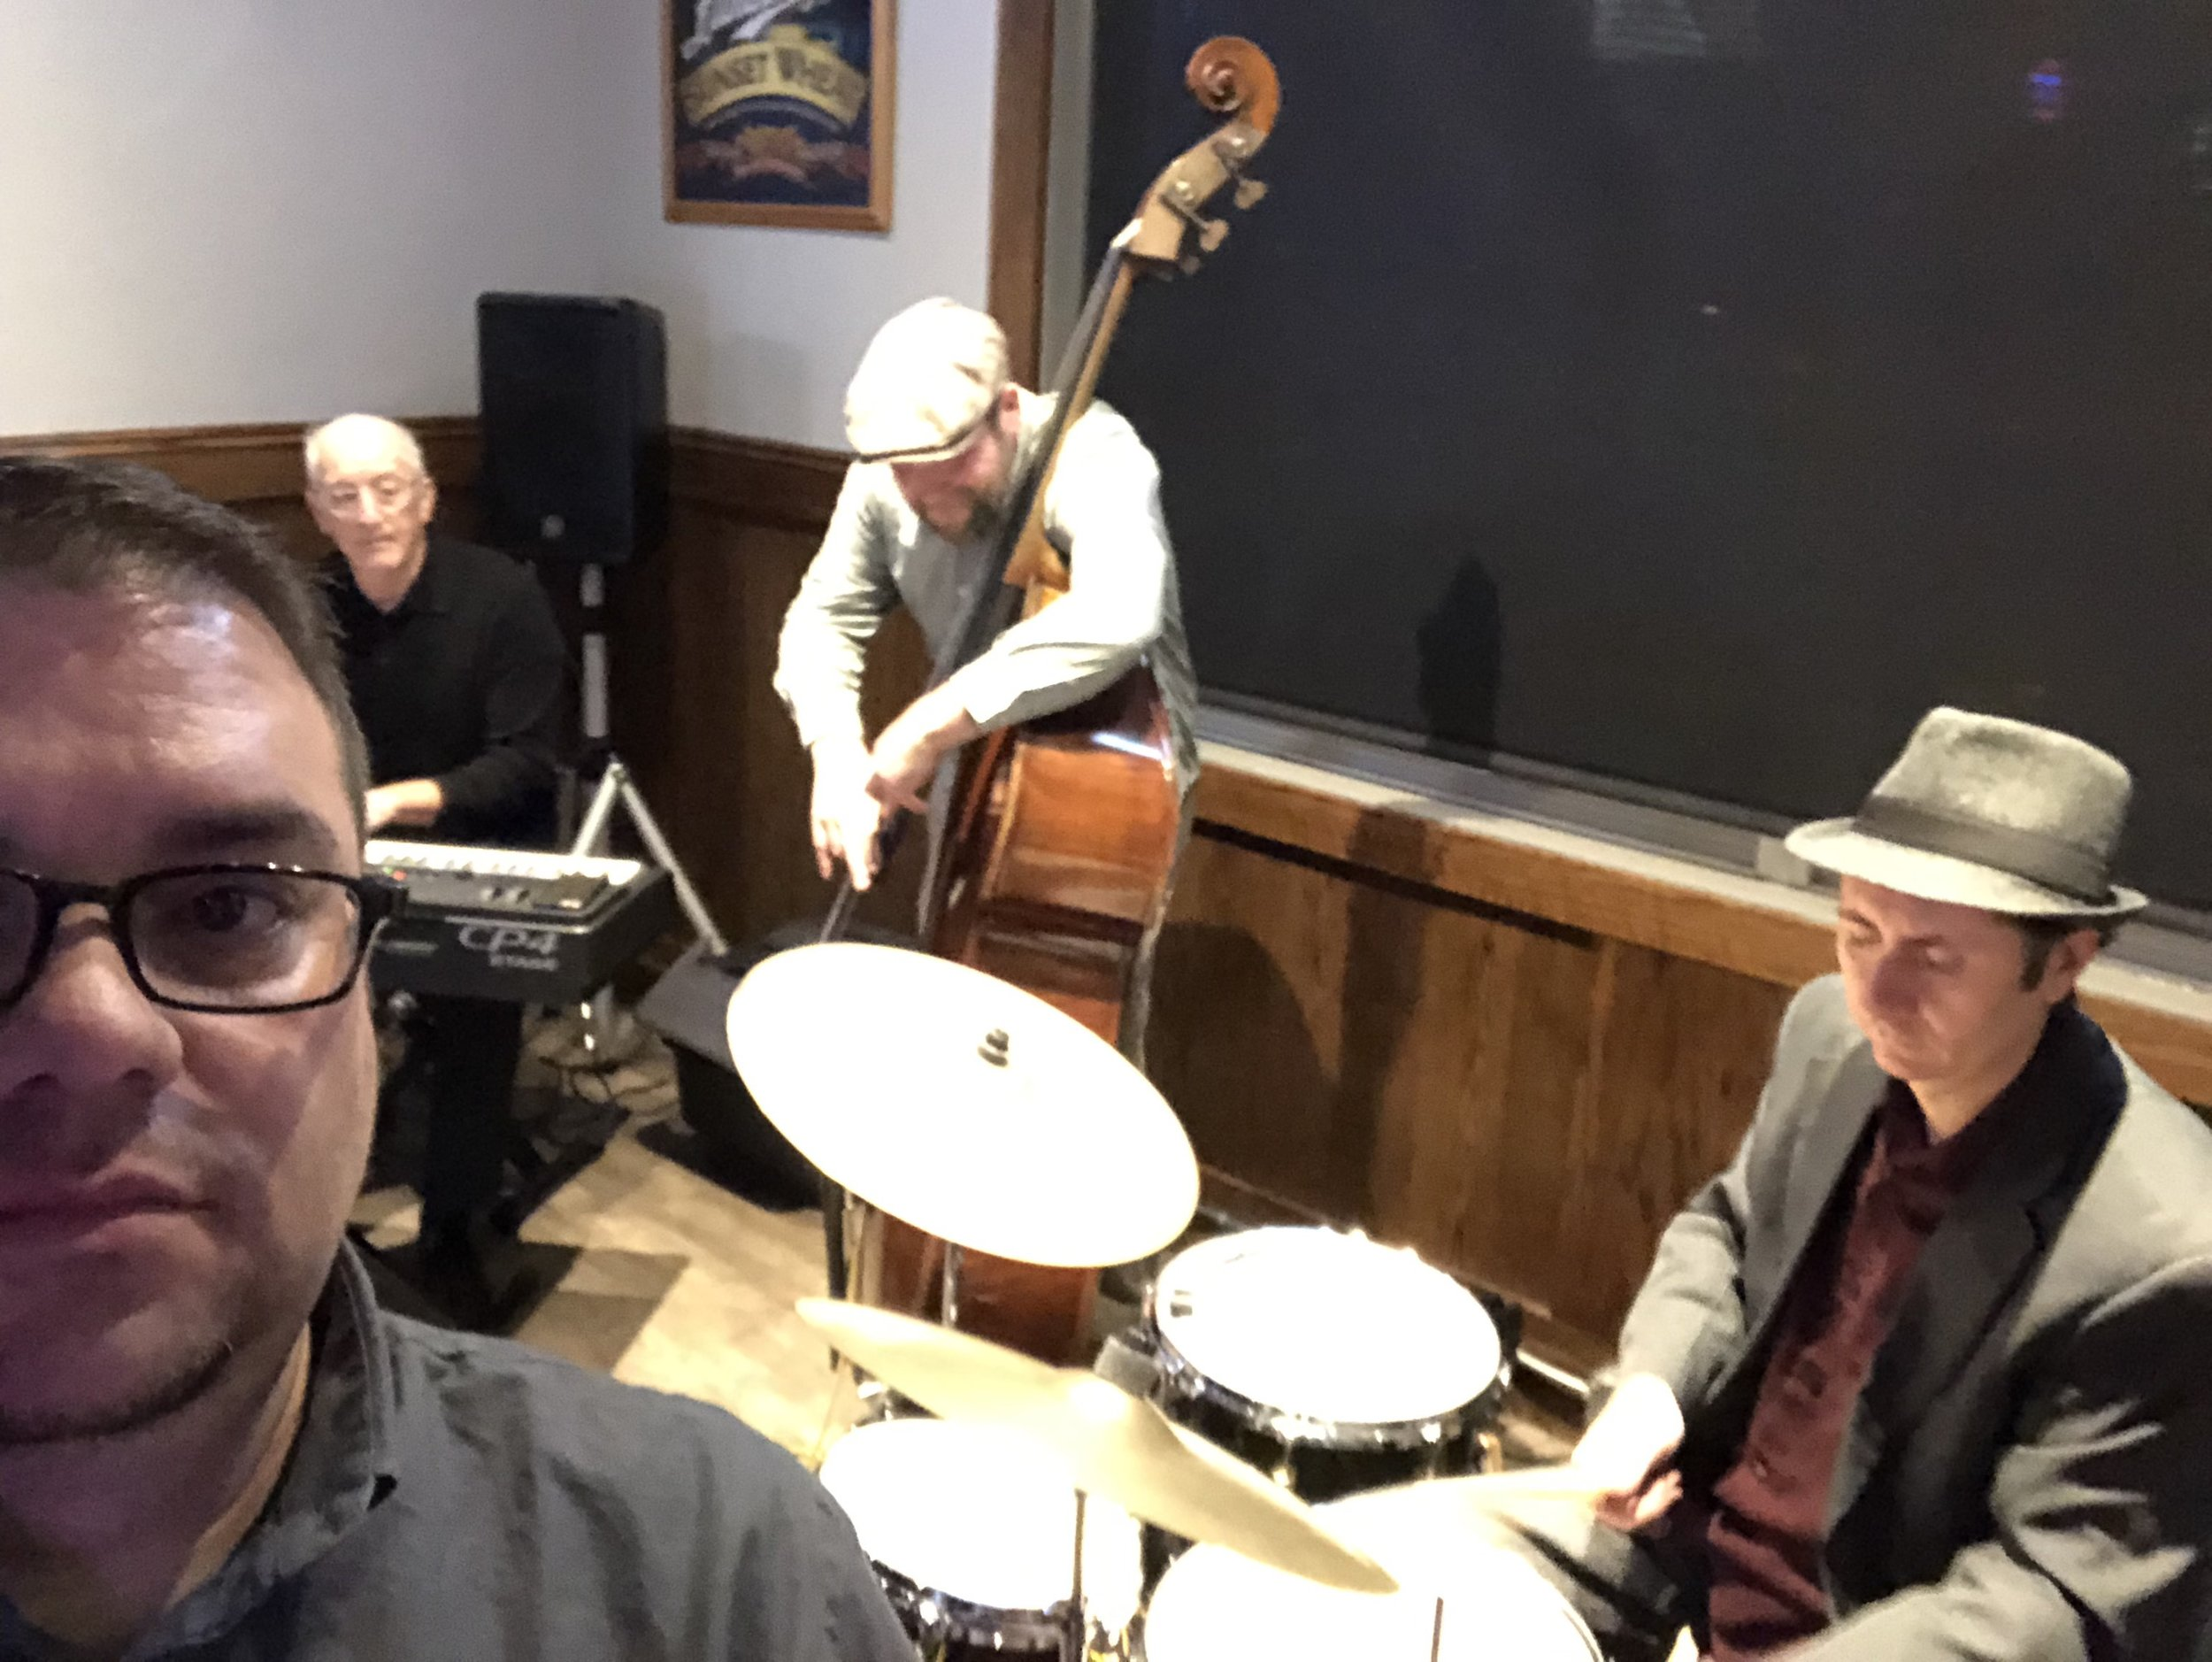 Jam Session; Bill Nichols-bass, Ricky Exton-drums